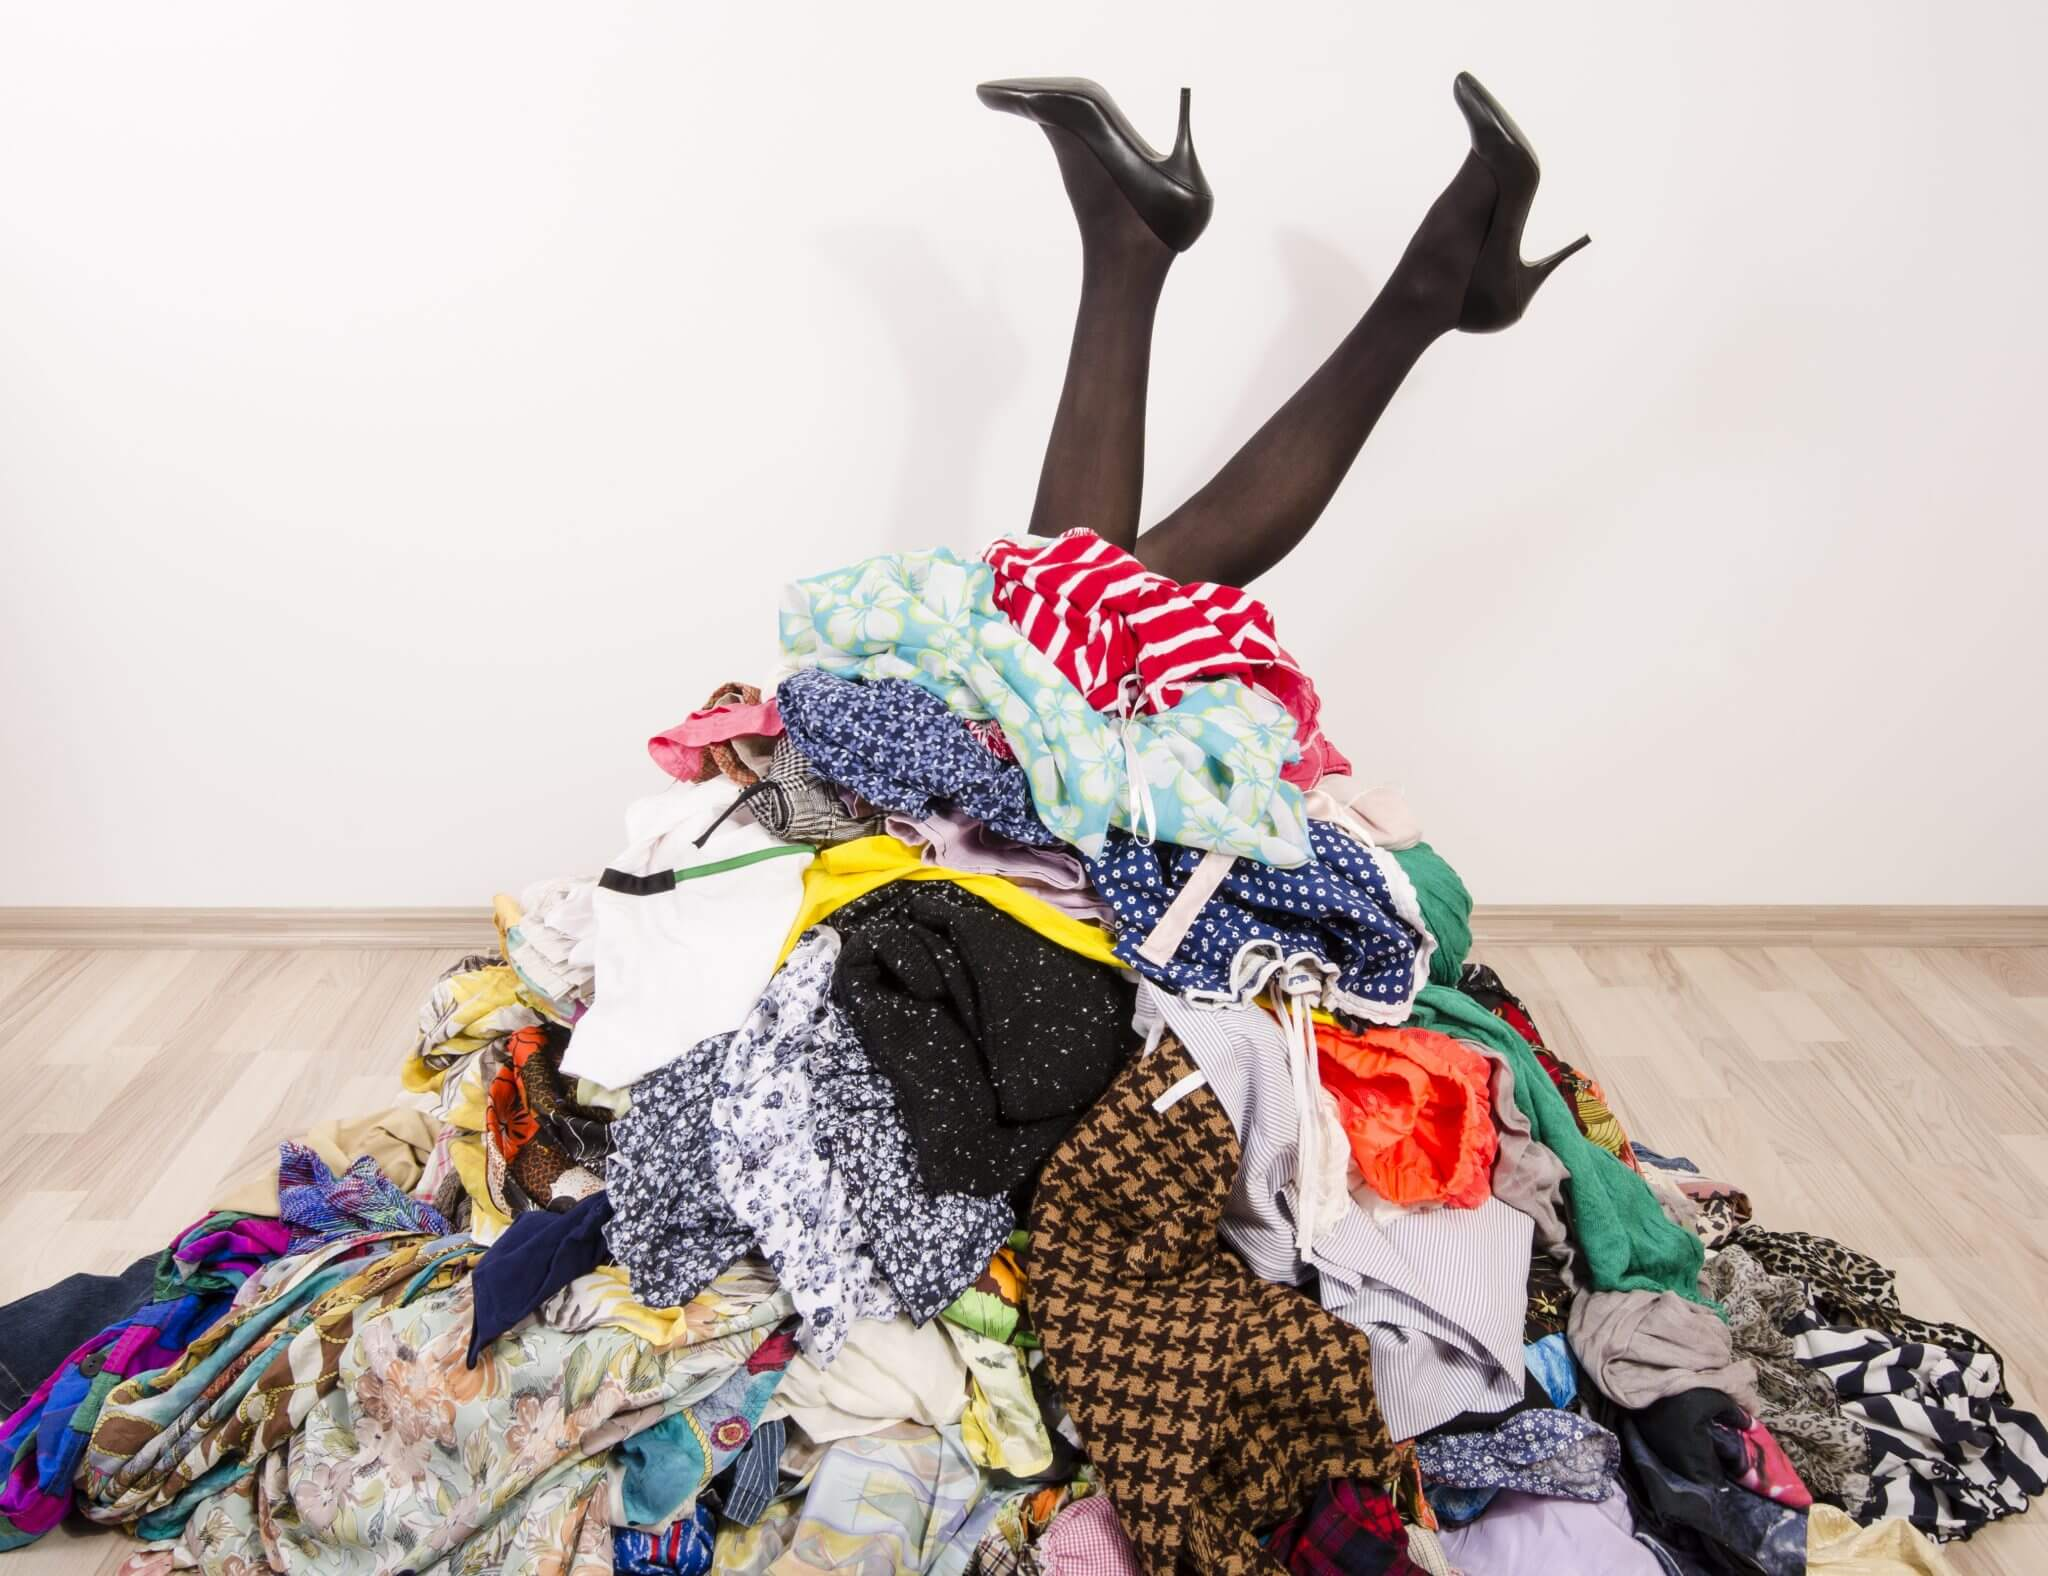 What to Do When There's Just Not Enough Closet Space